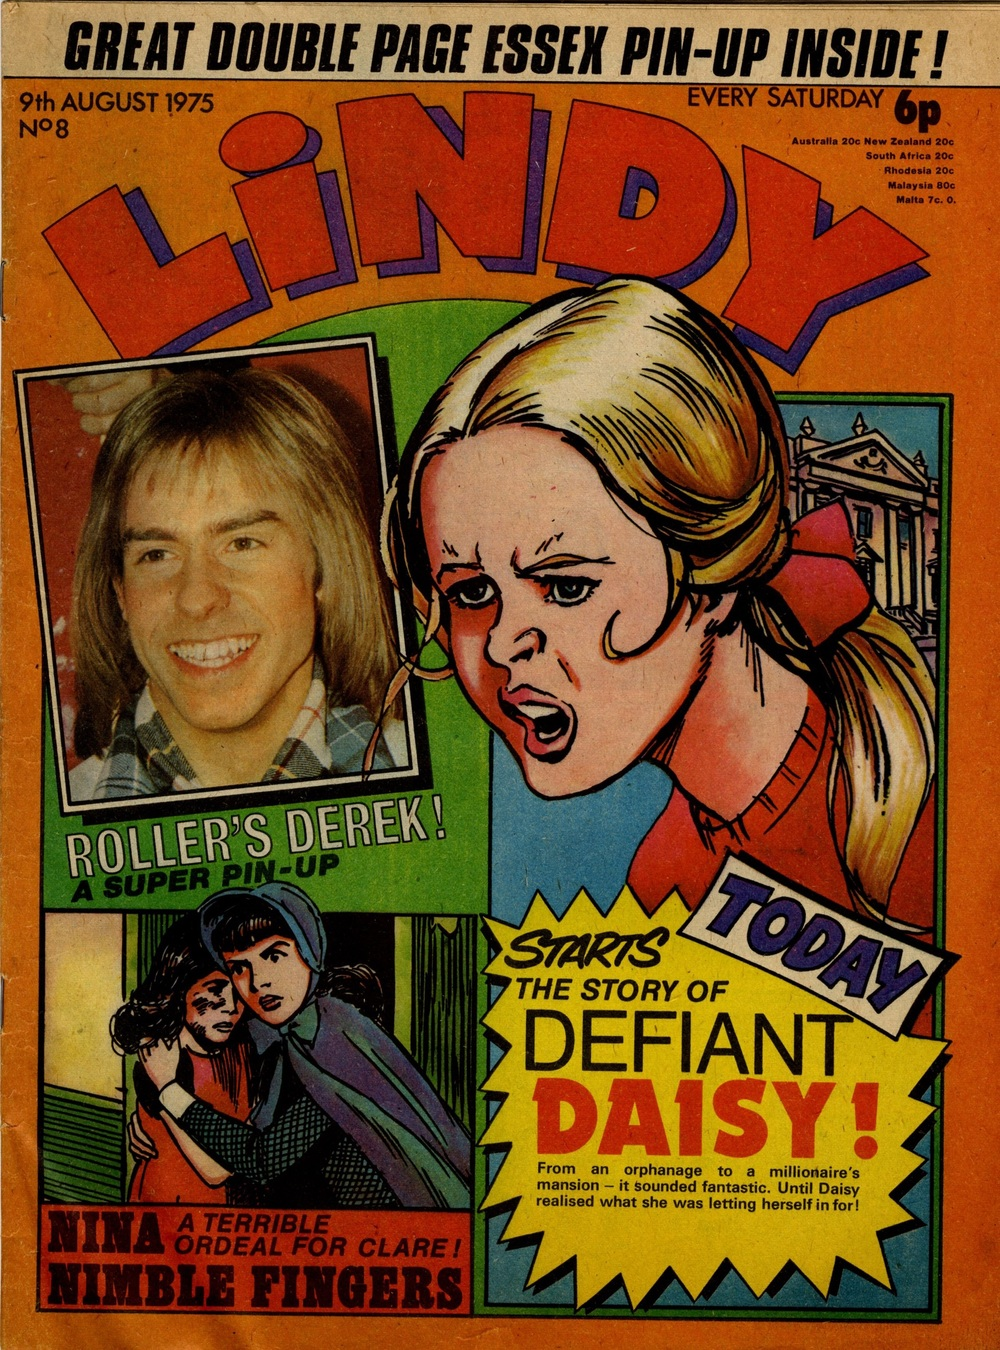 9 August 1975: Lindy